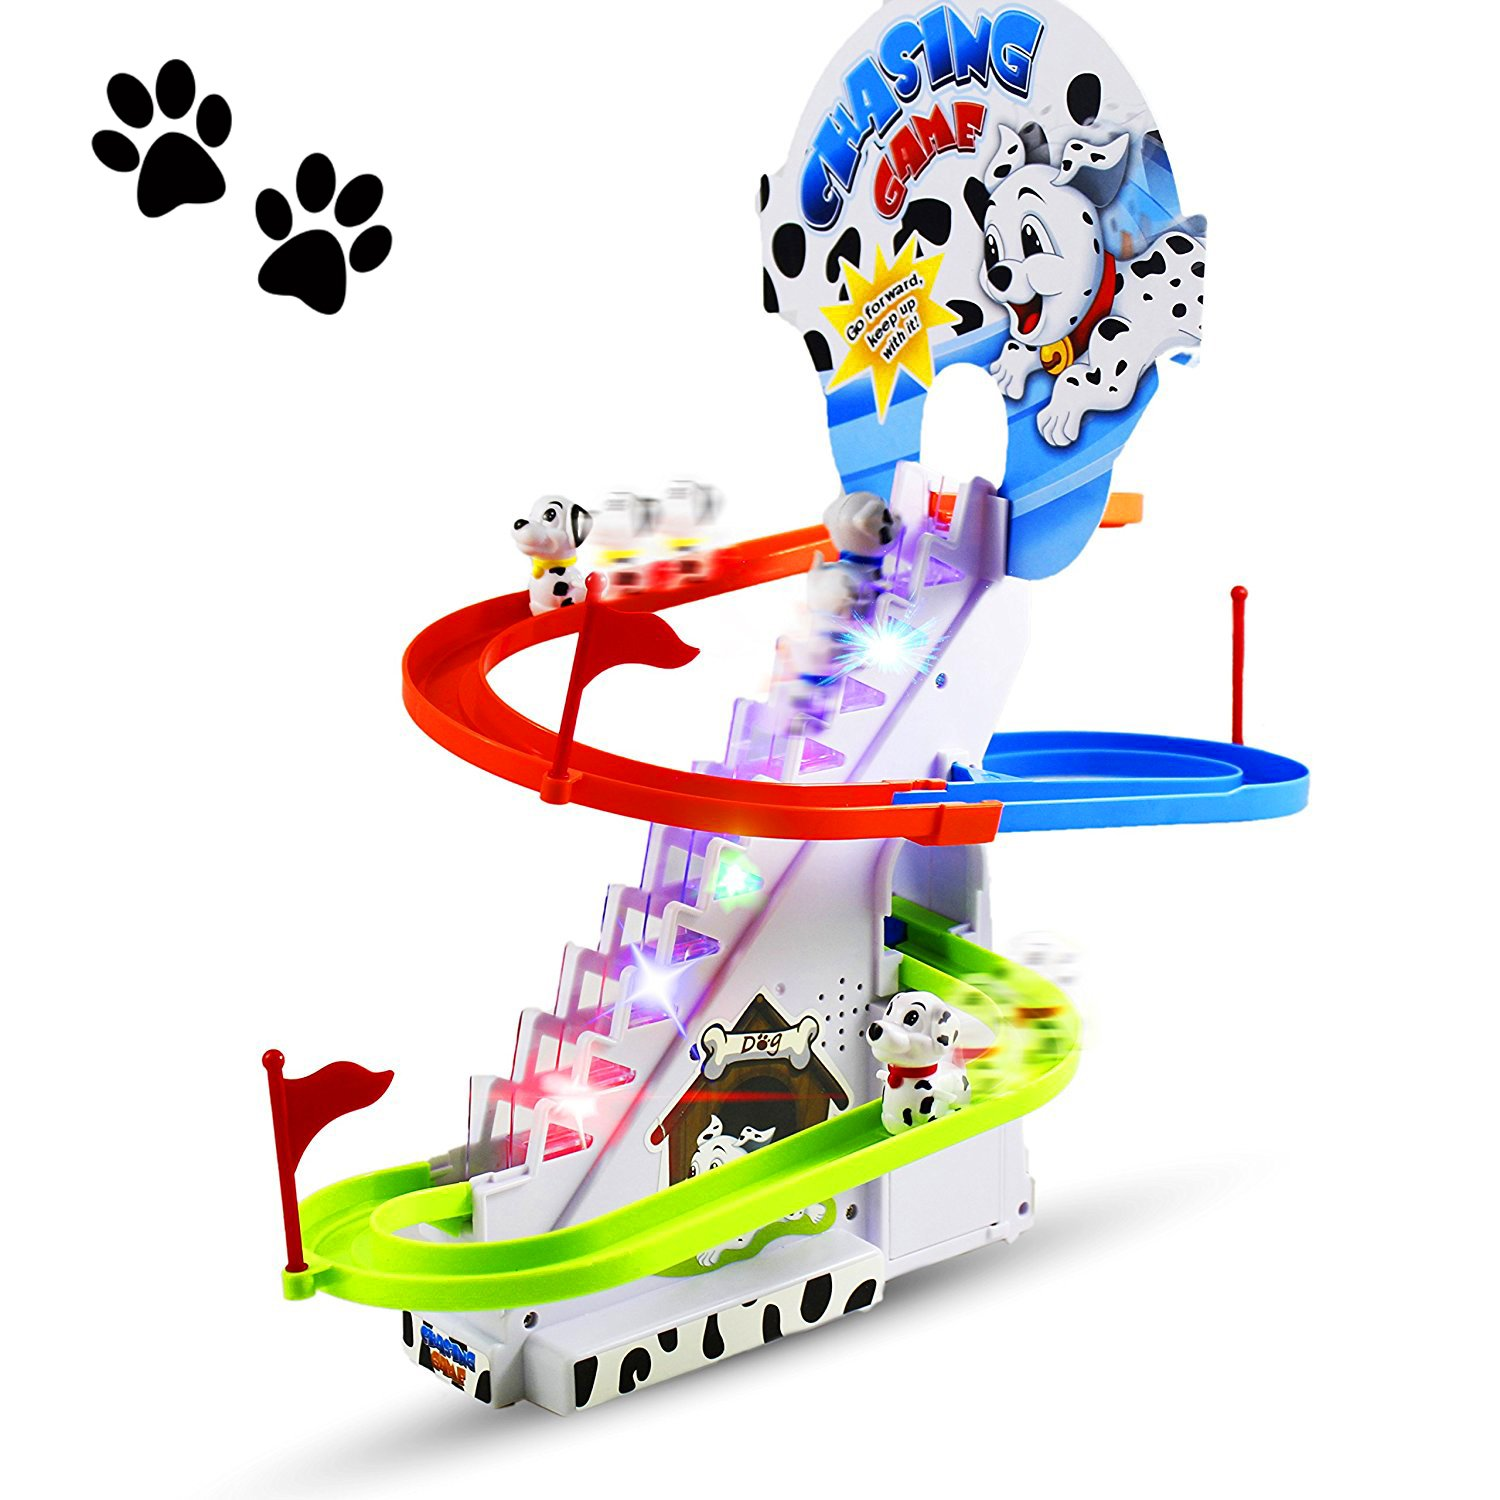 Haktoys Dalmatian Spotty Dog Chasing Game Playful Puppy Set | Upgraded Version Playful Playset with LED Flashing Lights and Music On/Off Button, Safe and Durable, Great Gift for Toddlers and Kids by Haktoys